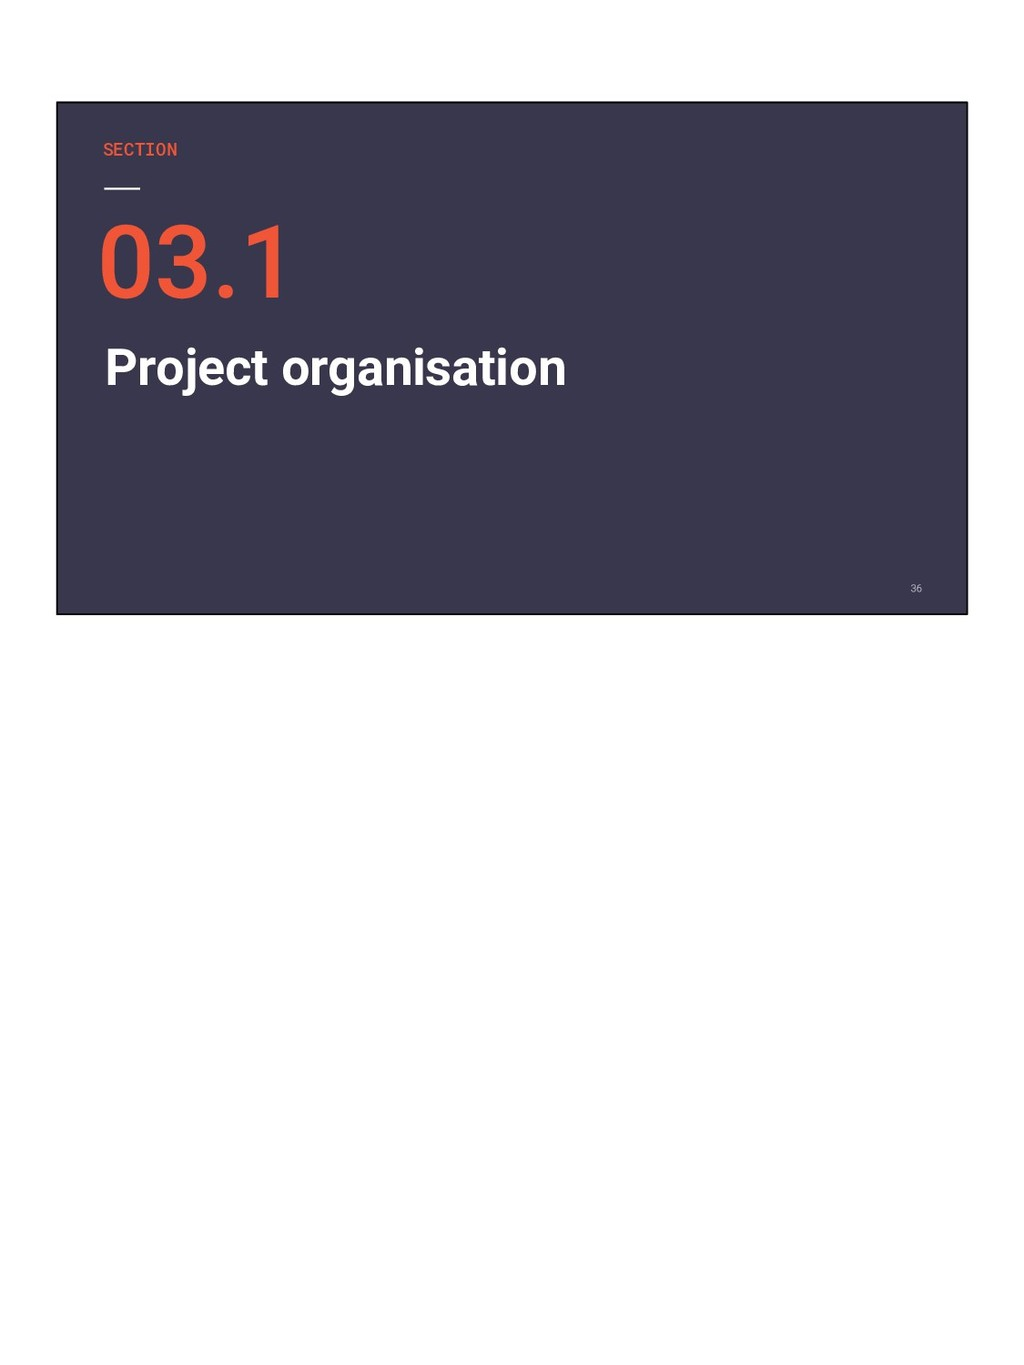 SECTION Project organisation